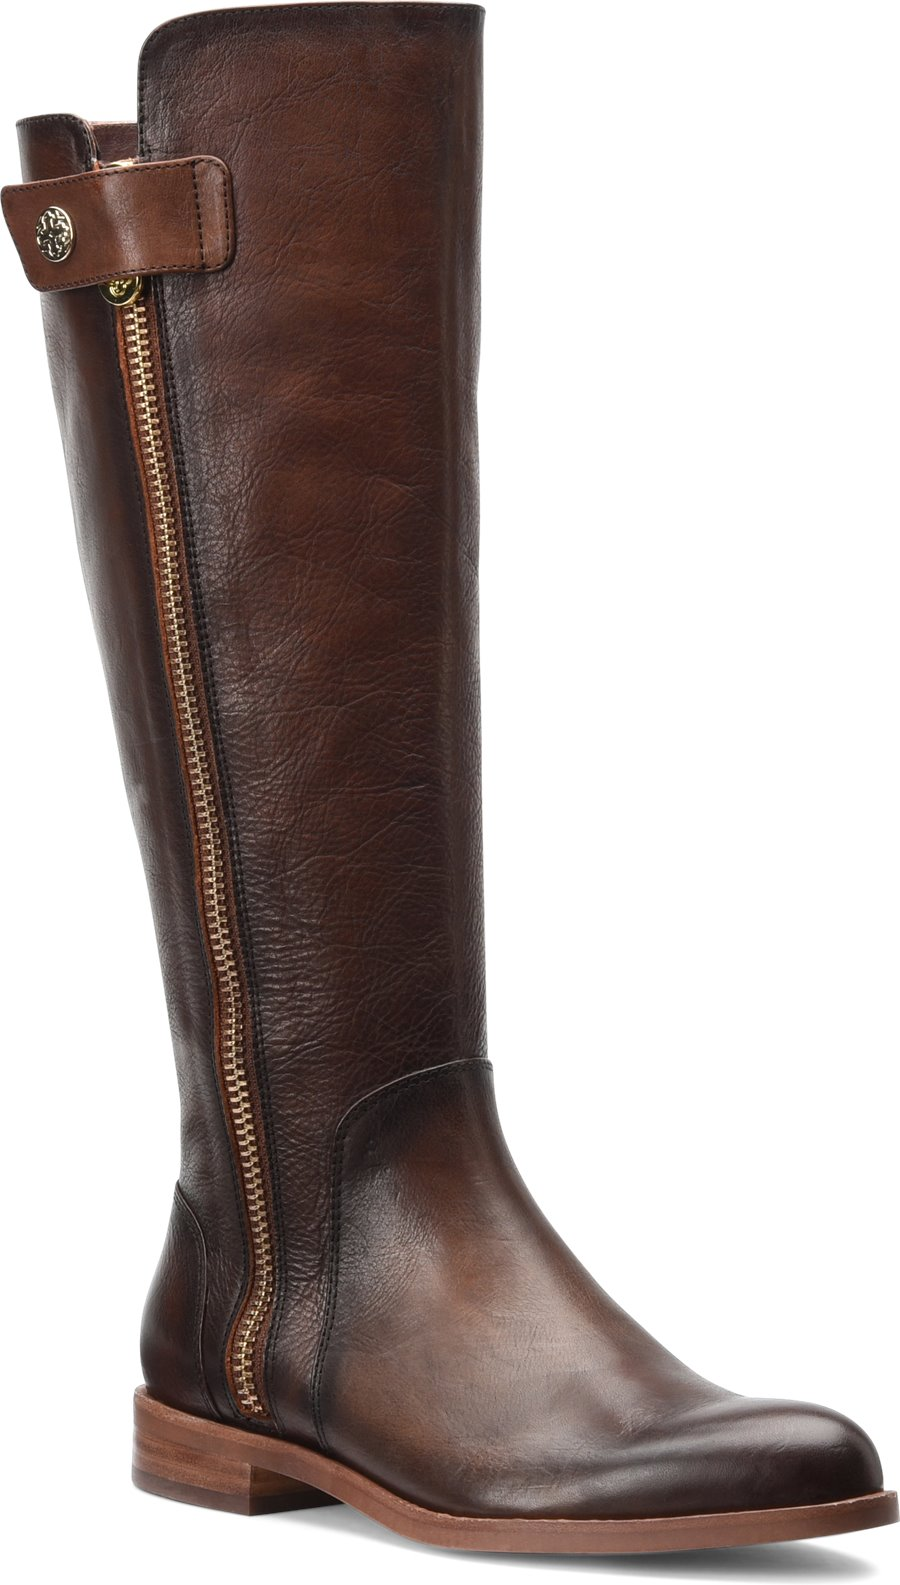 isola single women Find isola women's boots at shopstyle shop the latest collection of isola women's boots from the most popular stores - all in one place.